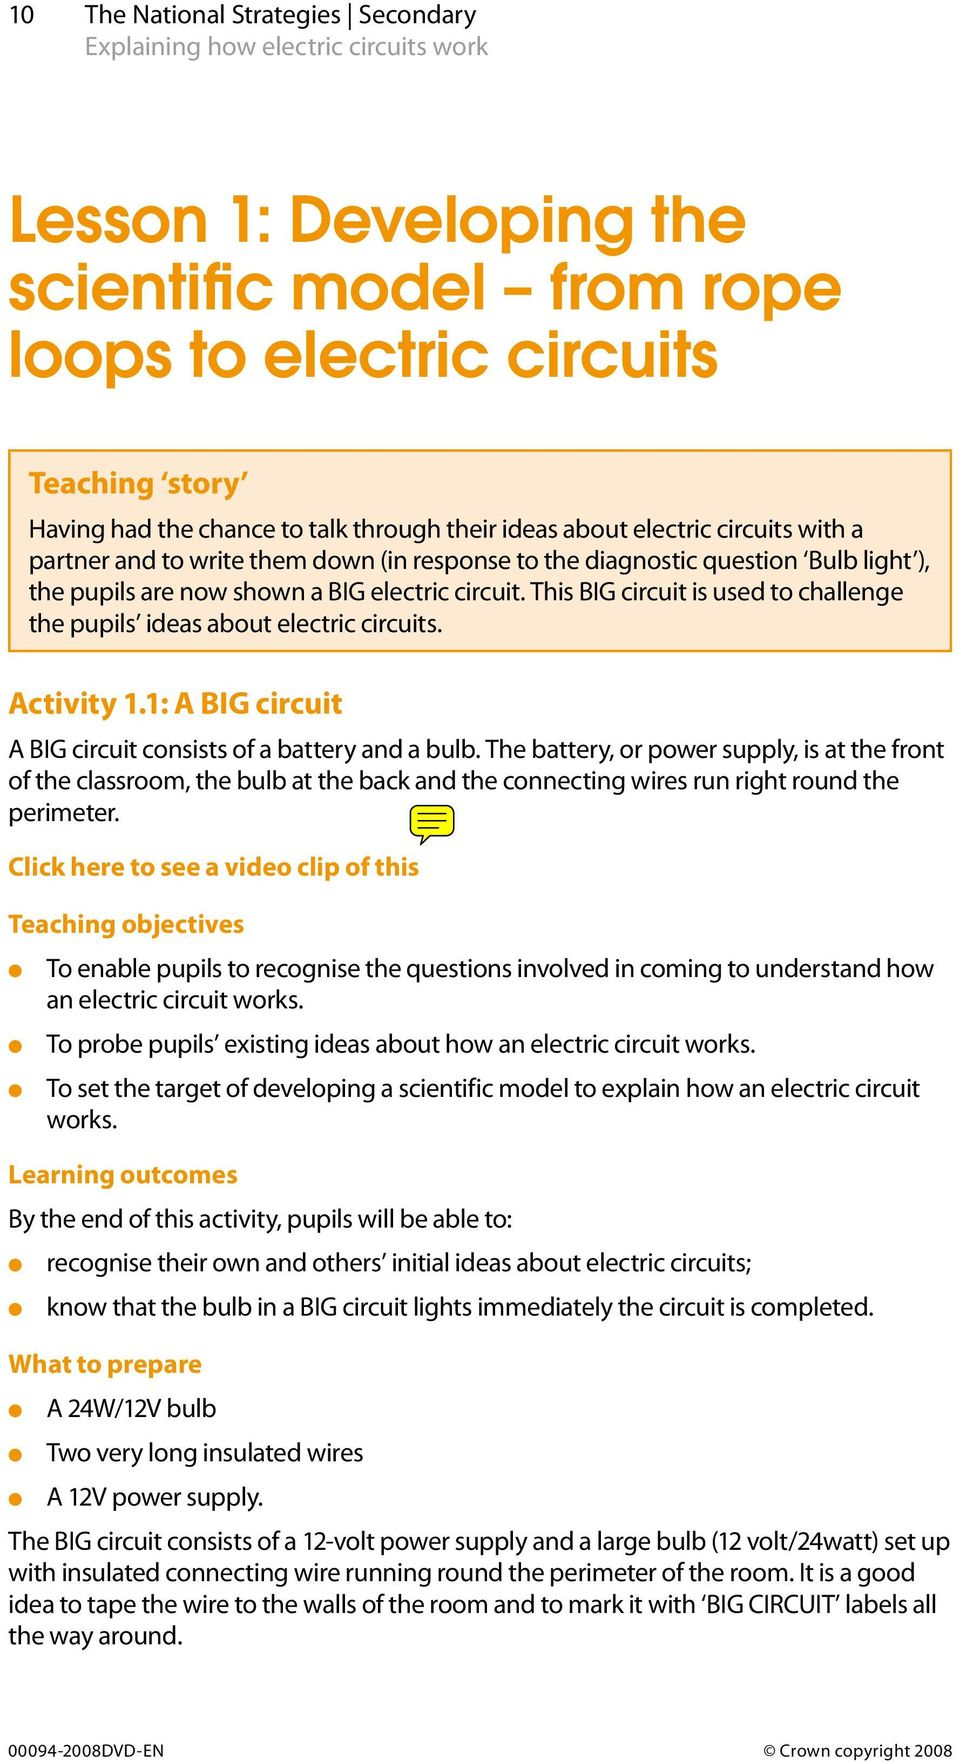 Explaining How Electric Circuits Work Science Teaching Unit Pdf Return To Circuit Design Ideas This Big Is Used Challenge The Pupils About Activity 11